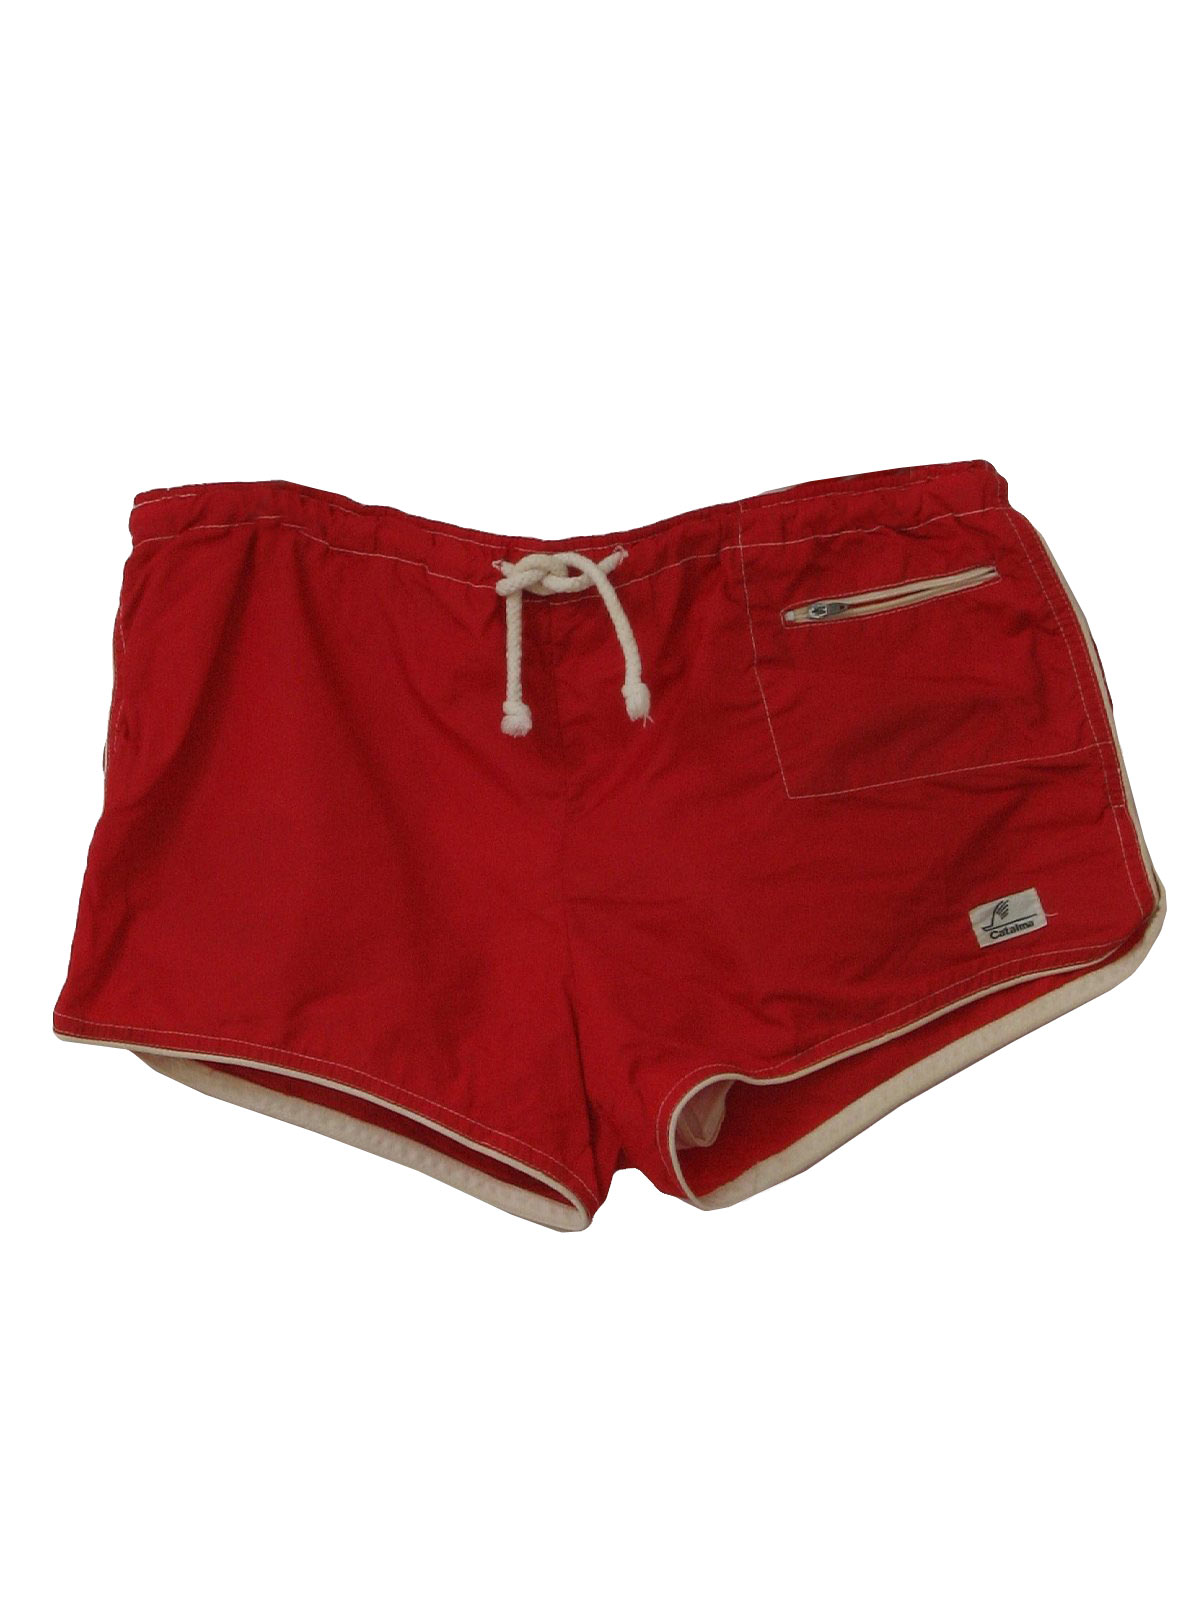 Mens Red Short Shorts